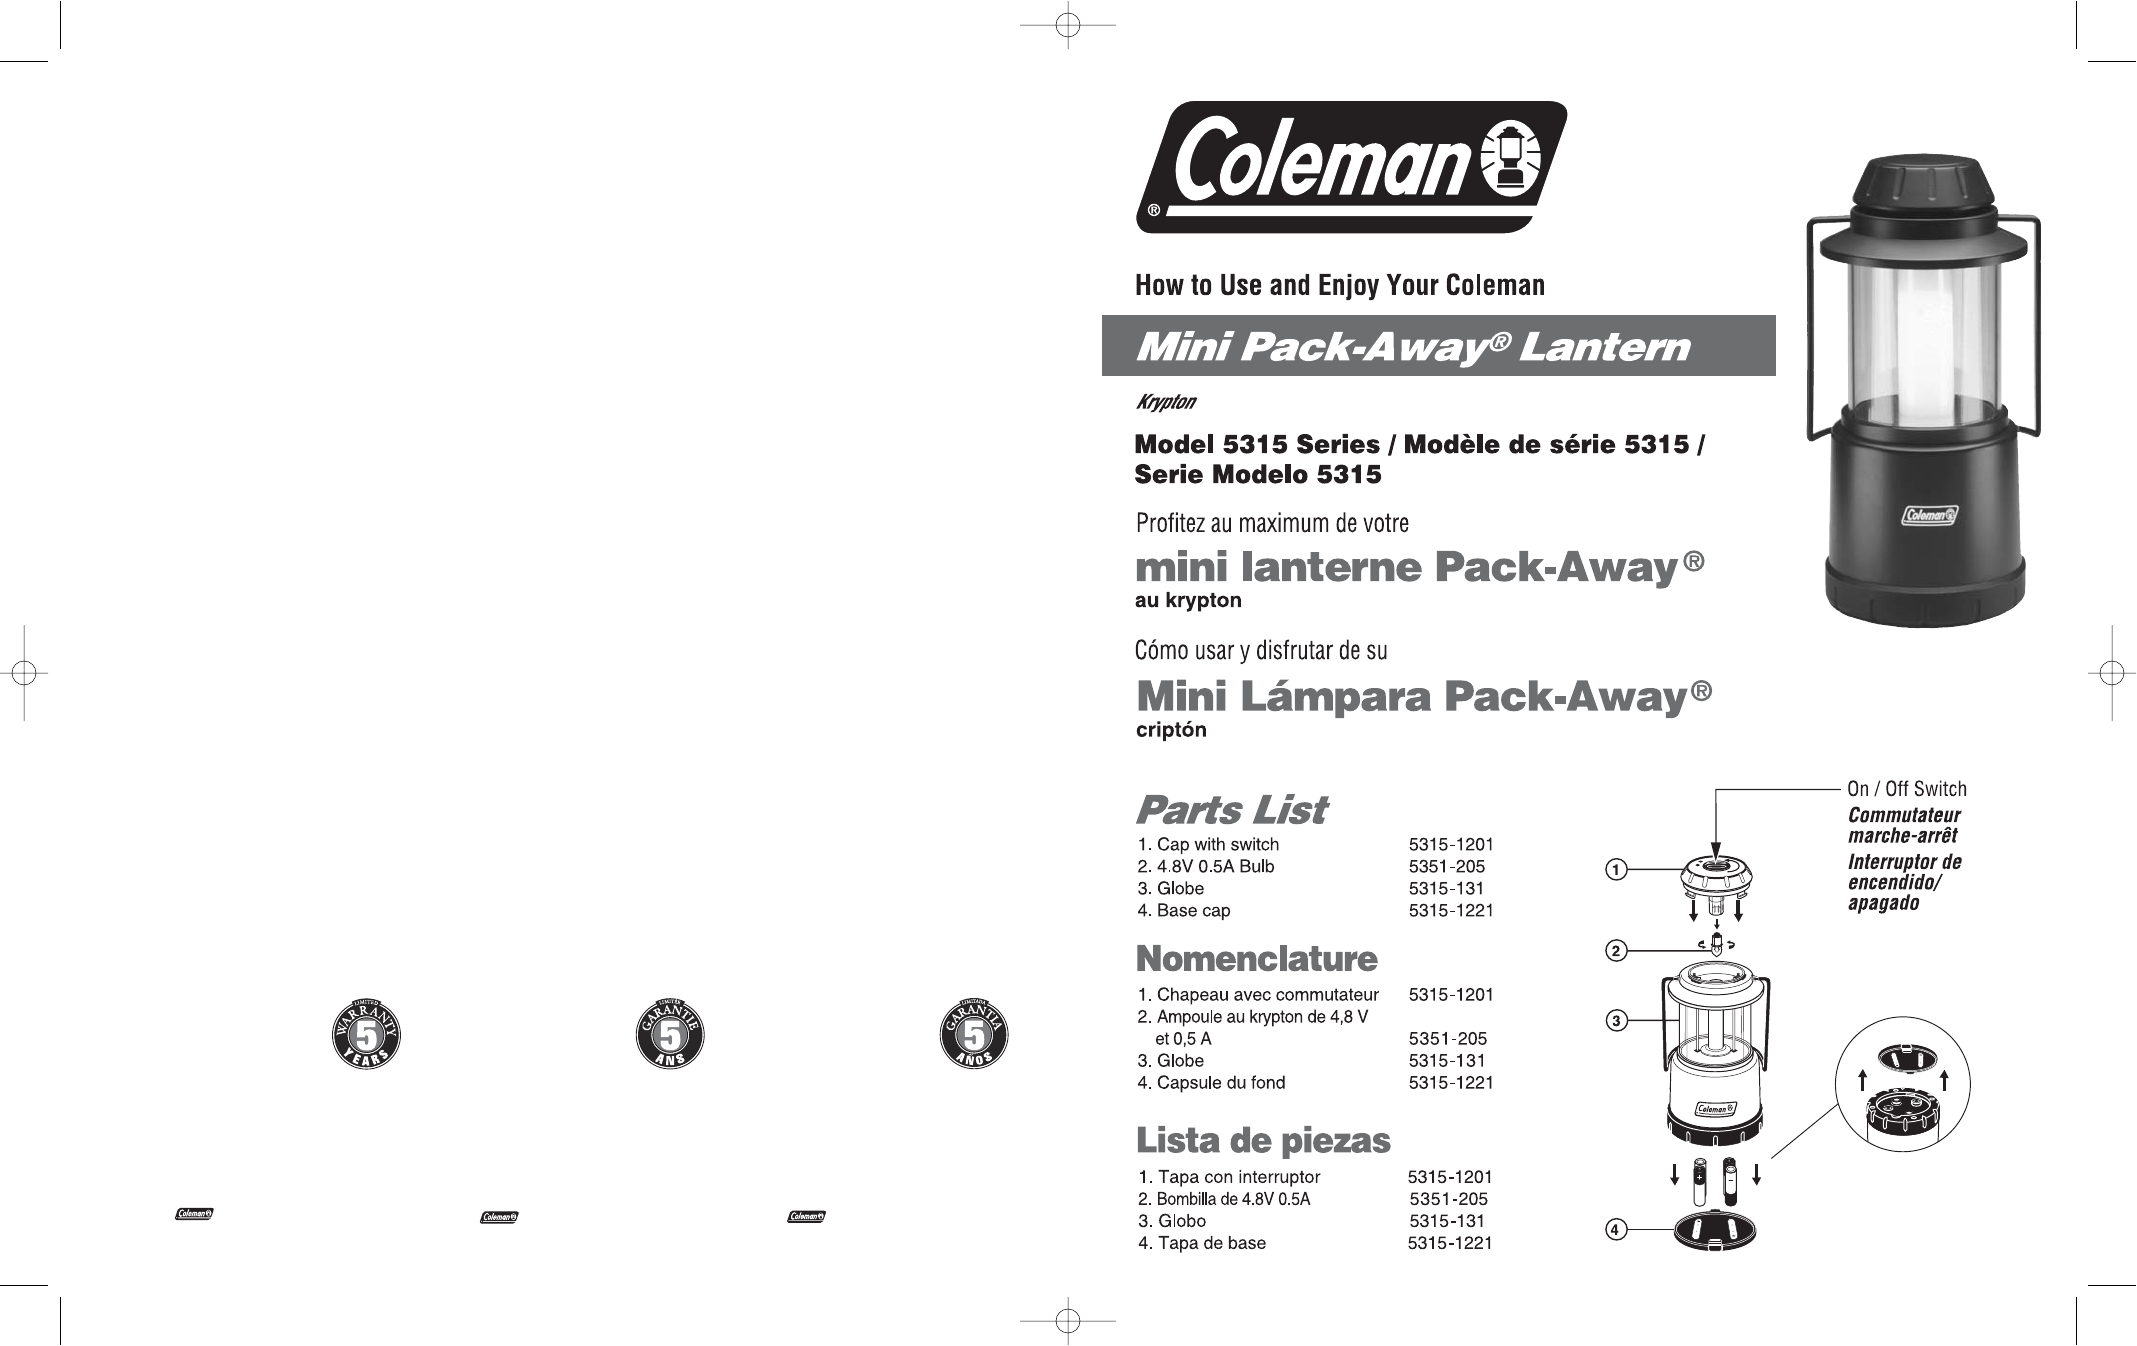 coleman camping equipment 5315 user guide manualsonline com rh tv manualsonline com Coleman Watch 40-372 Coleman Watches for Men